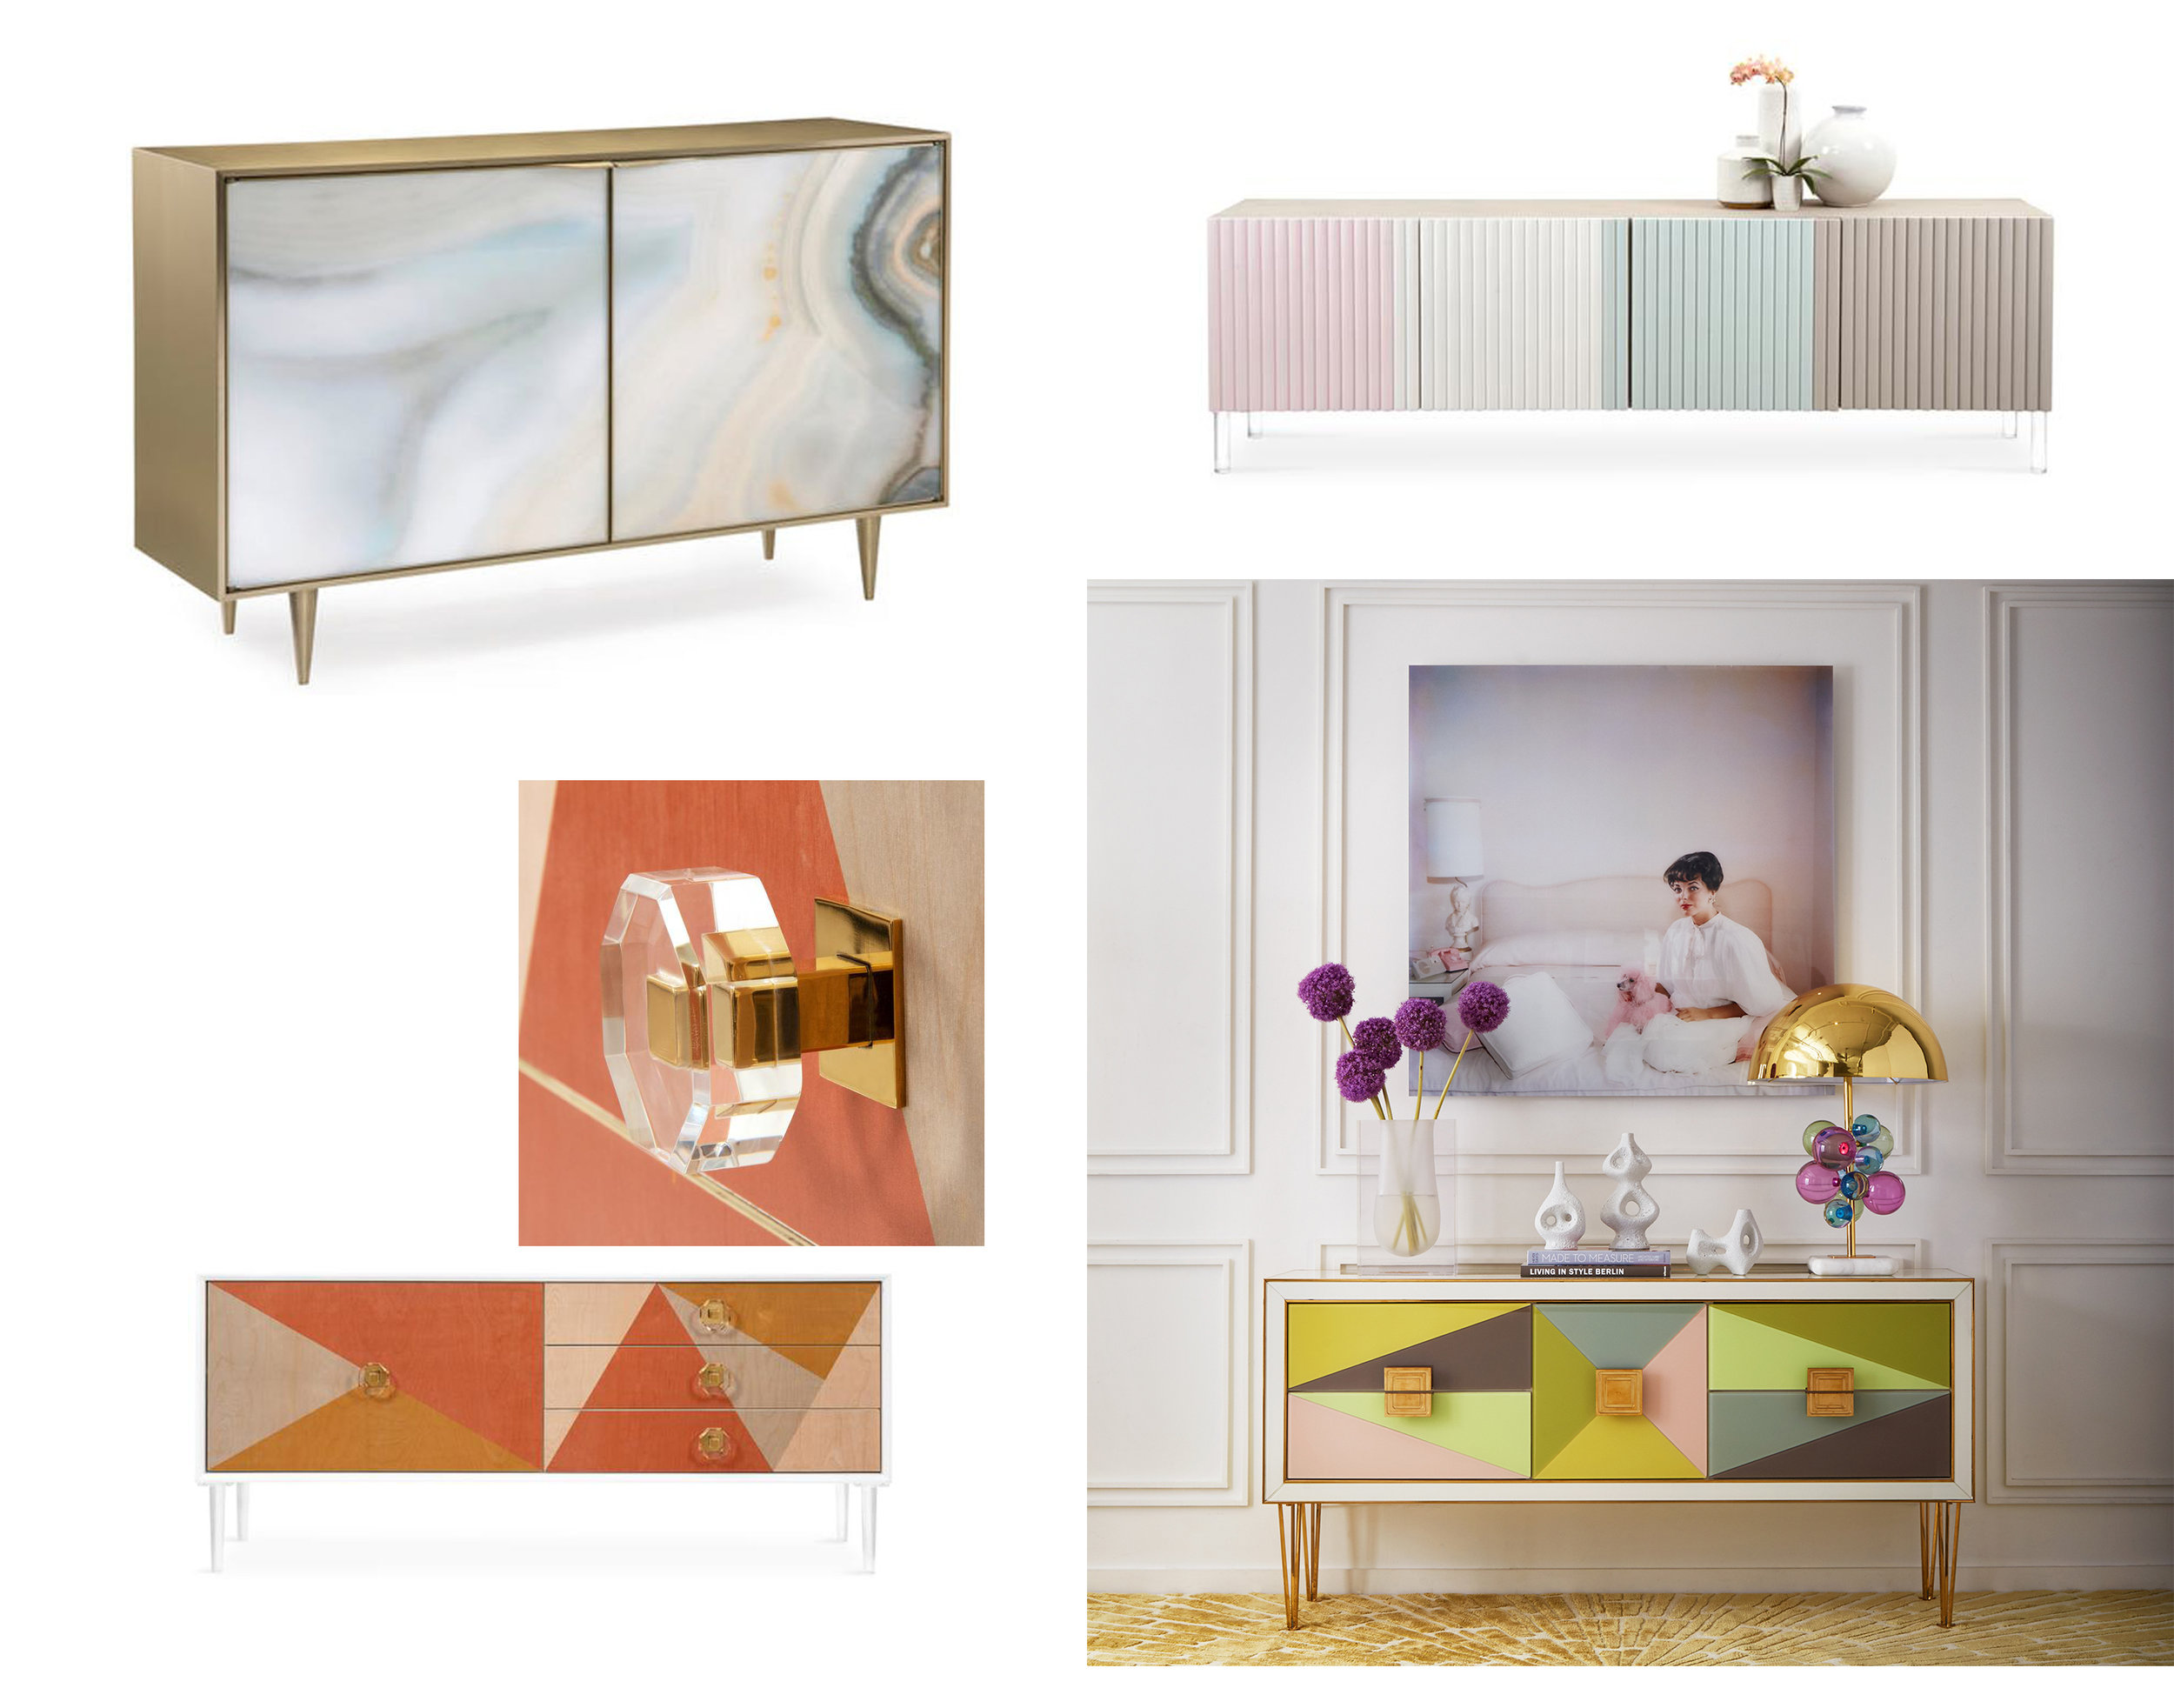 JONATHAN ADLER  |  MOD SHOP  |  MOD SHOP  |  WEST COAST LIVING